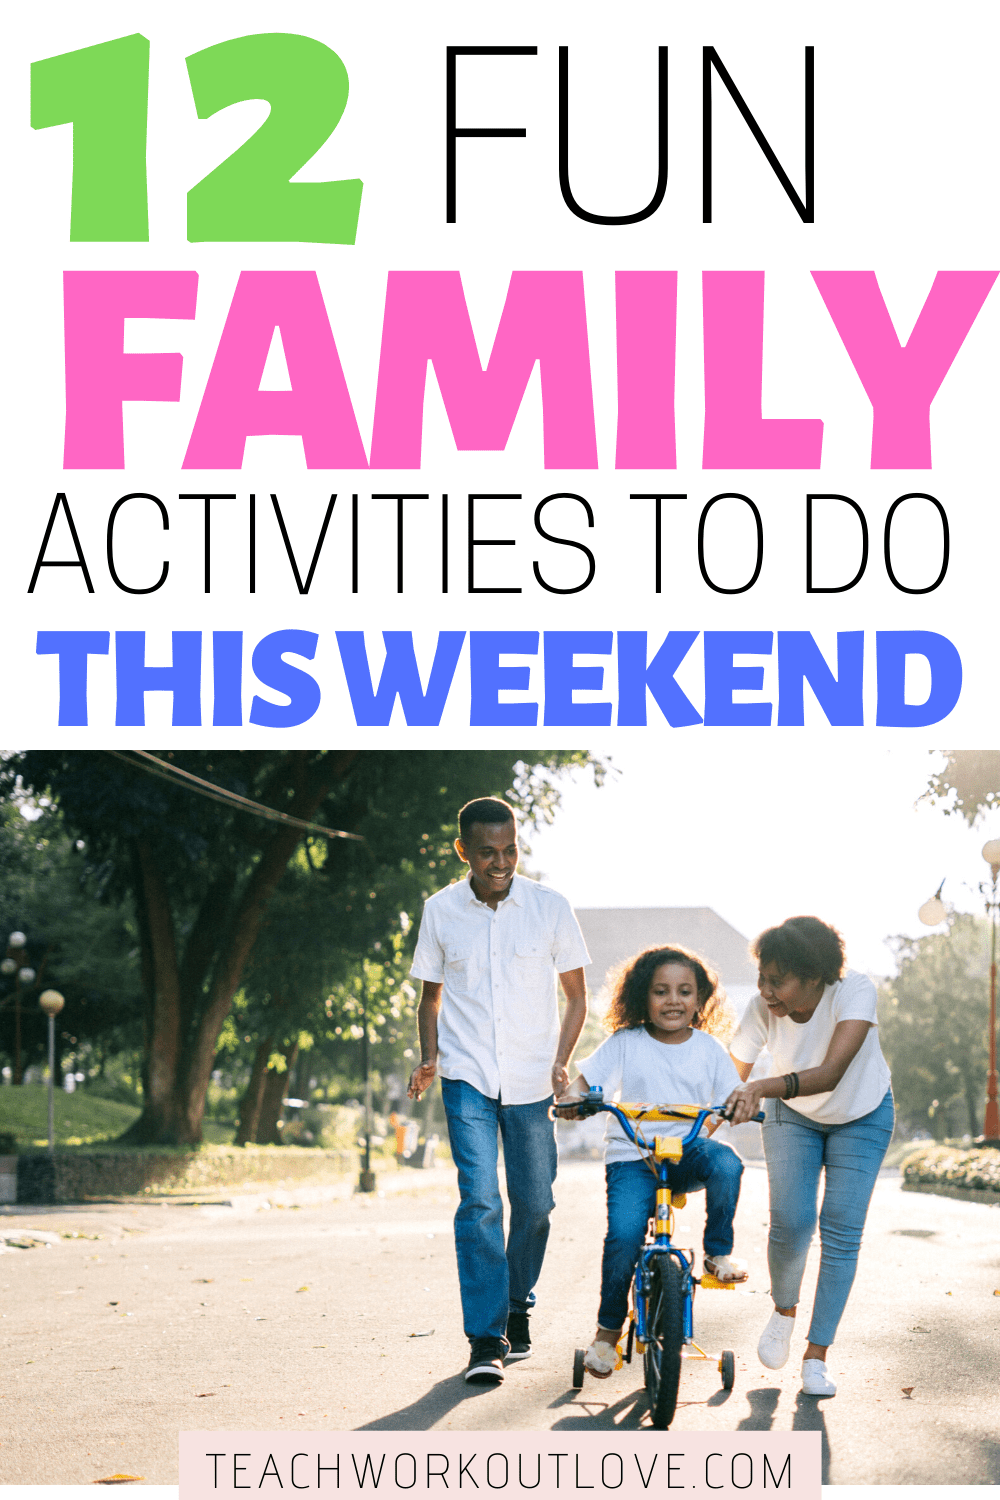 If you're looking for some family weekend inspiration you've come to the right place. Read on to discover 12 family things to do this weekend.